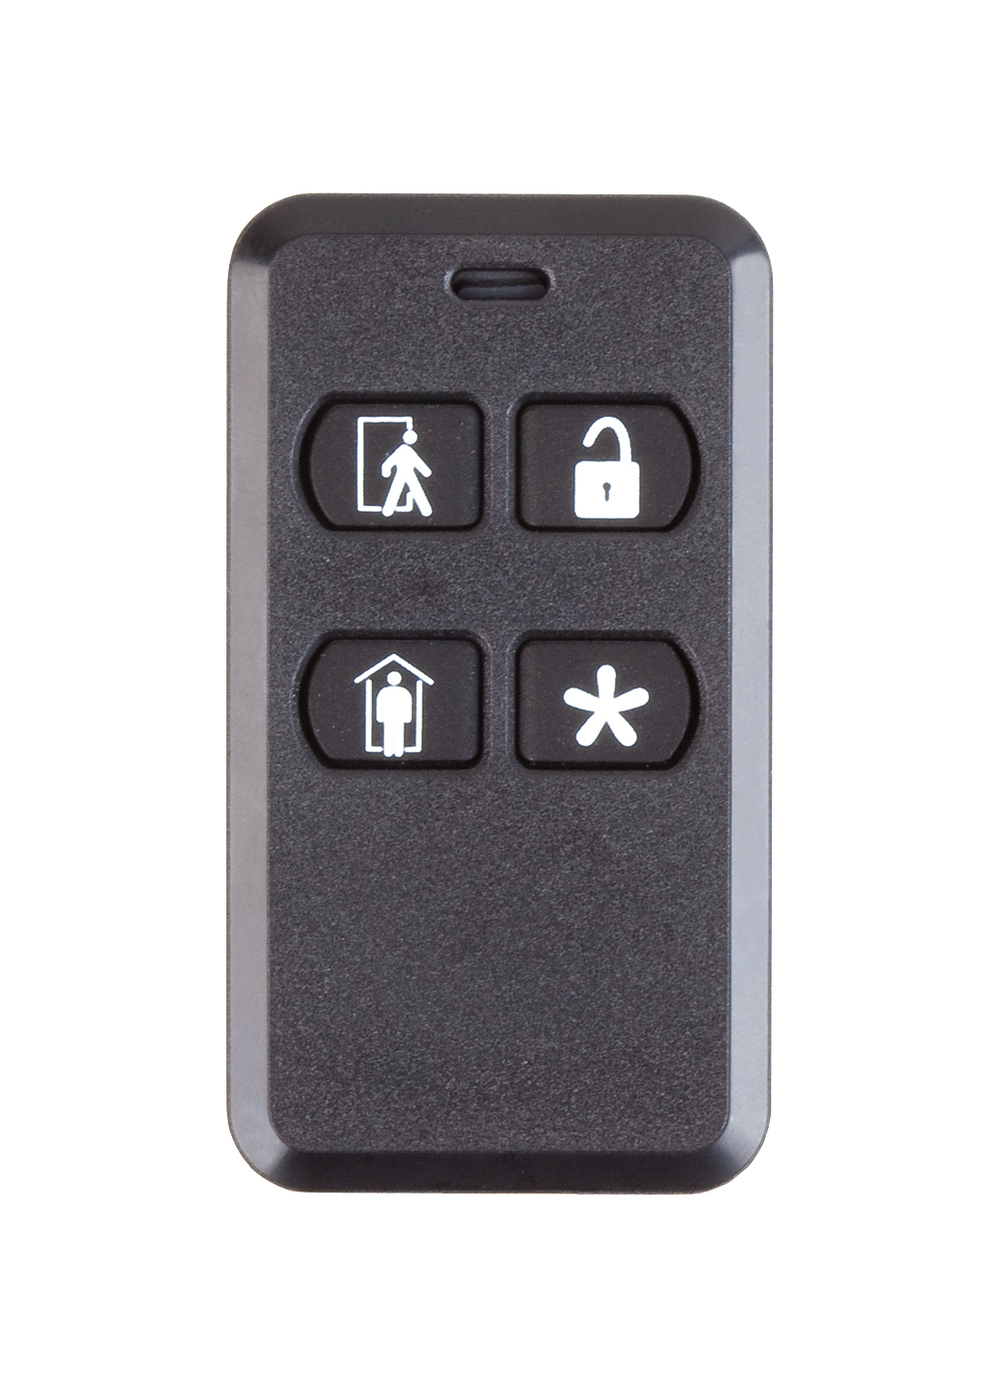 Key Chain Remote